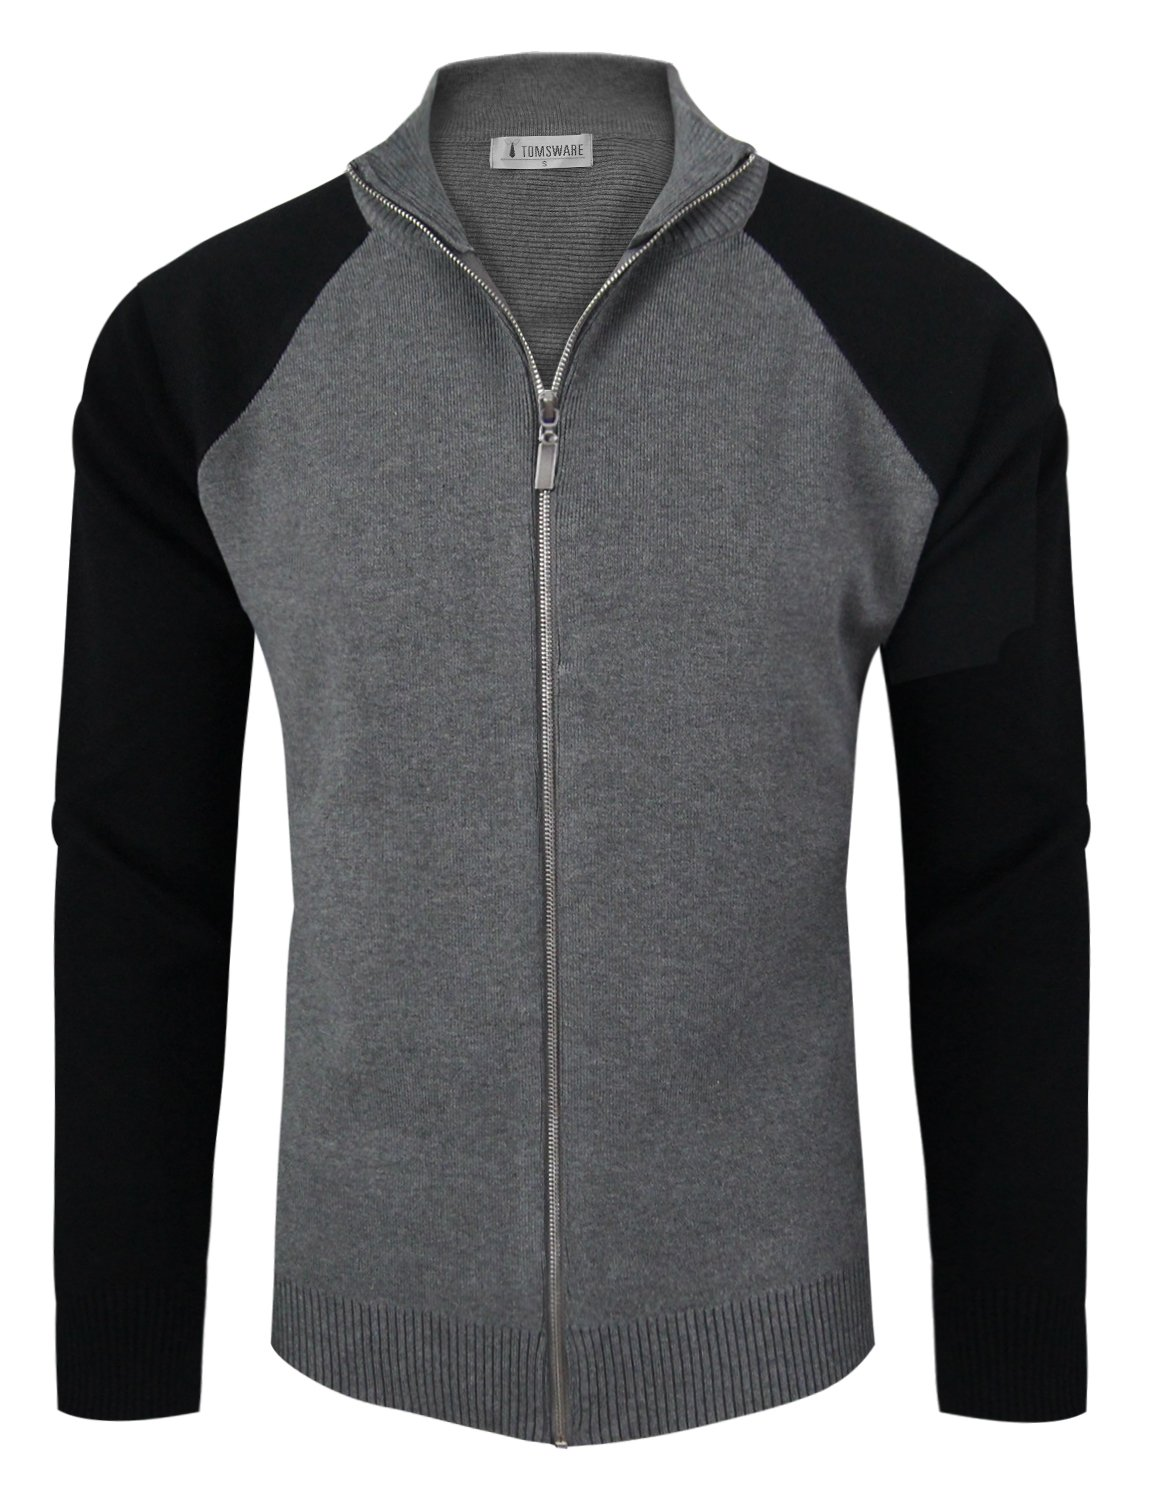 Tom's Ware Mens Stylish Colorblocked Full Zip Cardigan TWHD1016-CHARCOAL-US XL